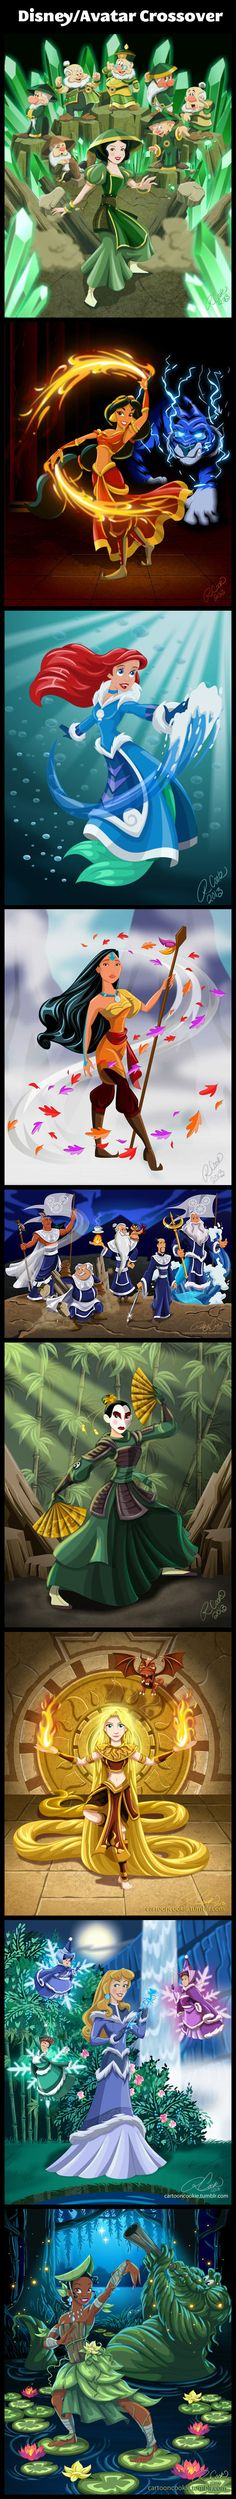 Disney/Avatar Princess